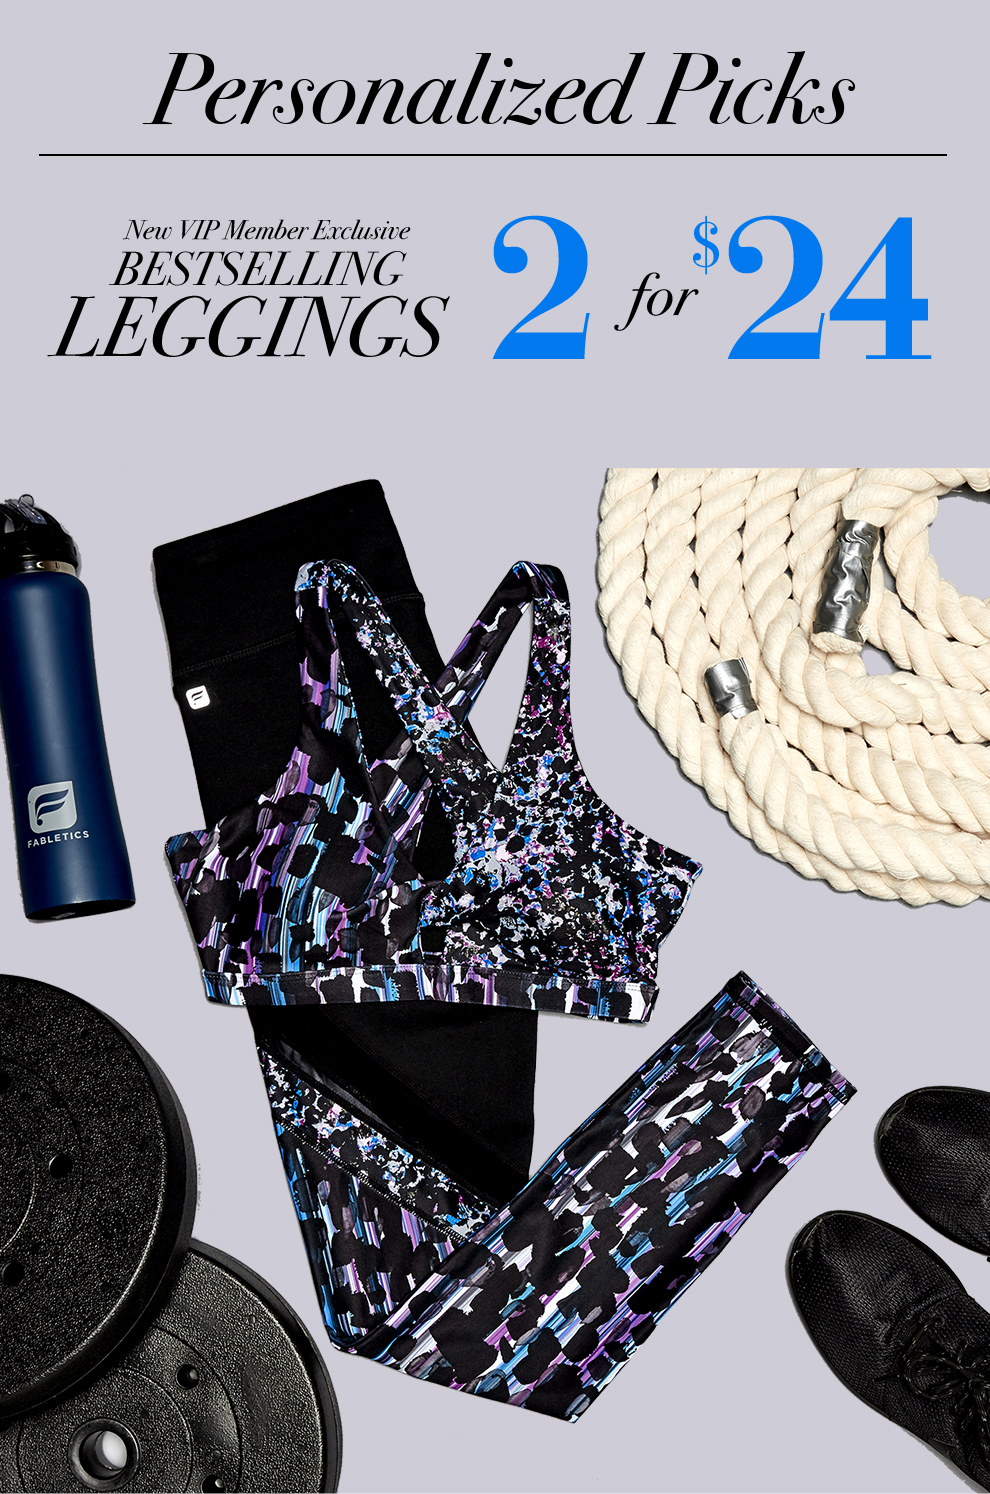 Get Your Two Best Selling Legging For $24